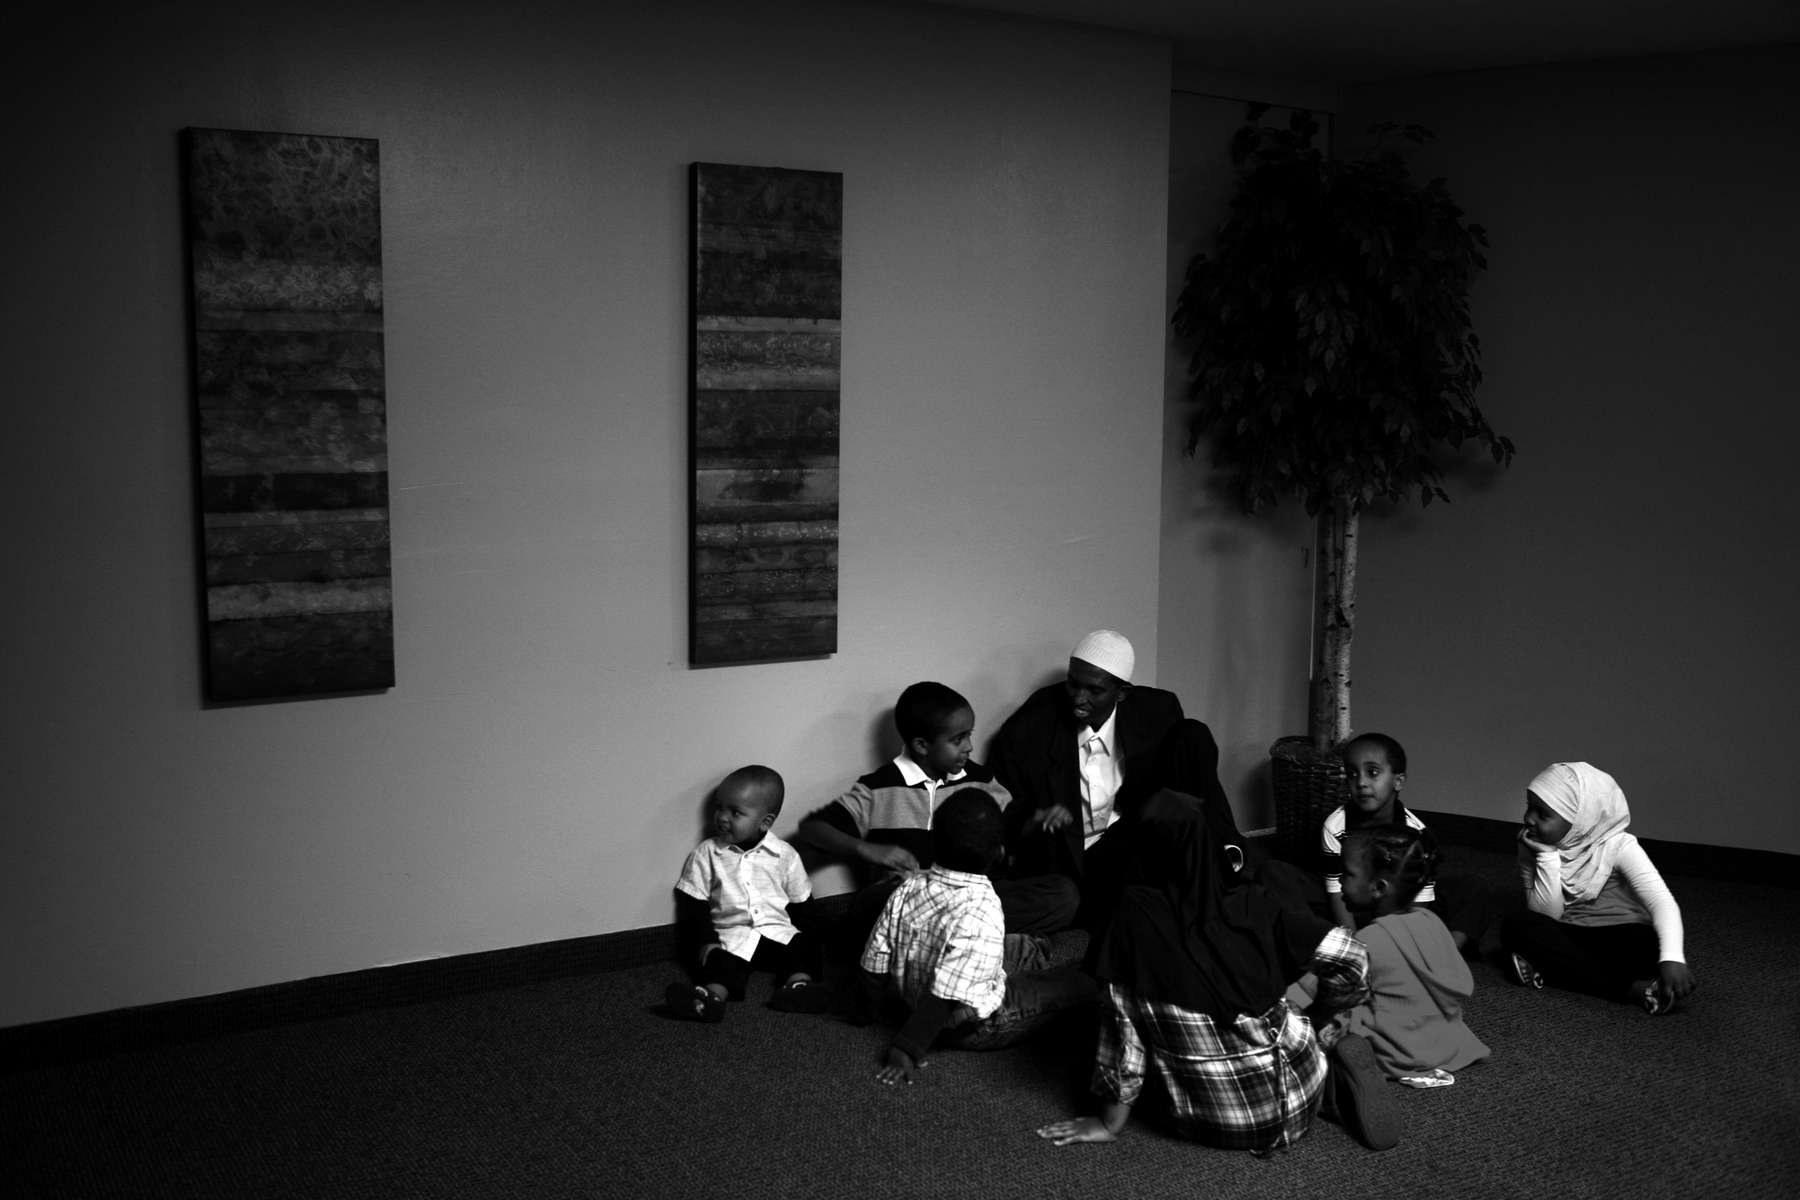 Liban Karshe, middle against wall, shared stories with a group of children before Iftar in Edina. Iftar is the evening meal when Muslims break their fast during the month of Ramadan.